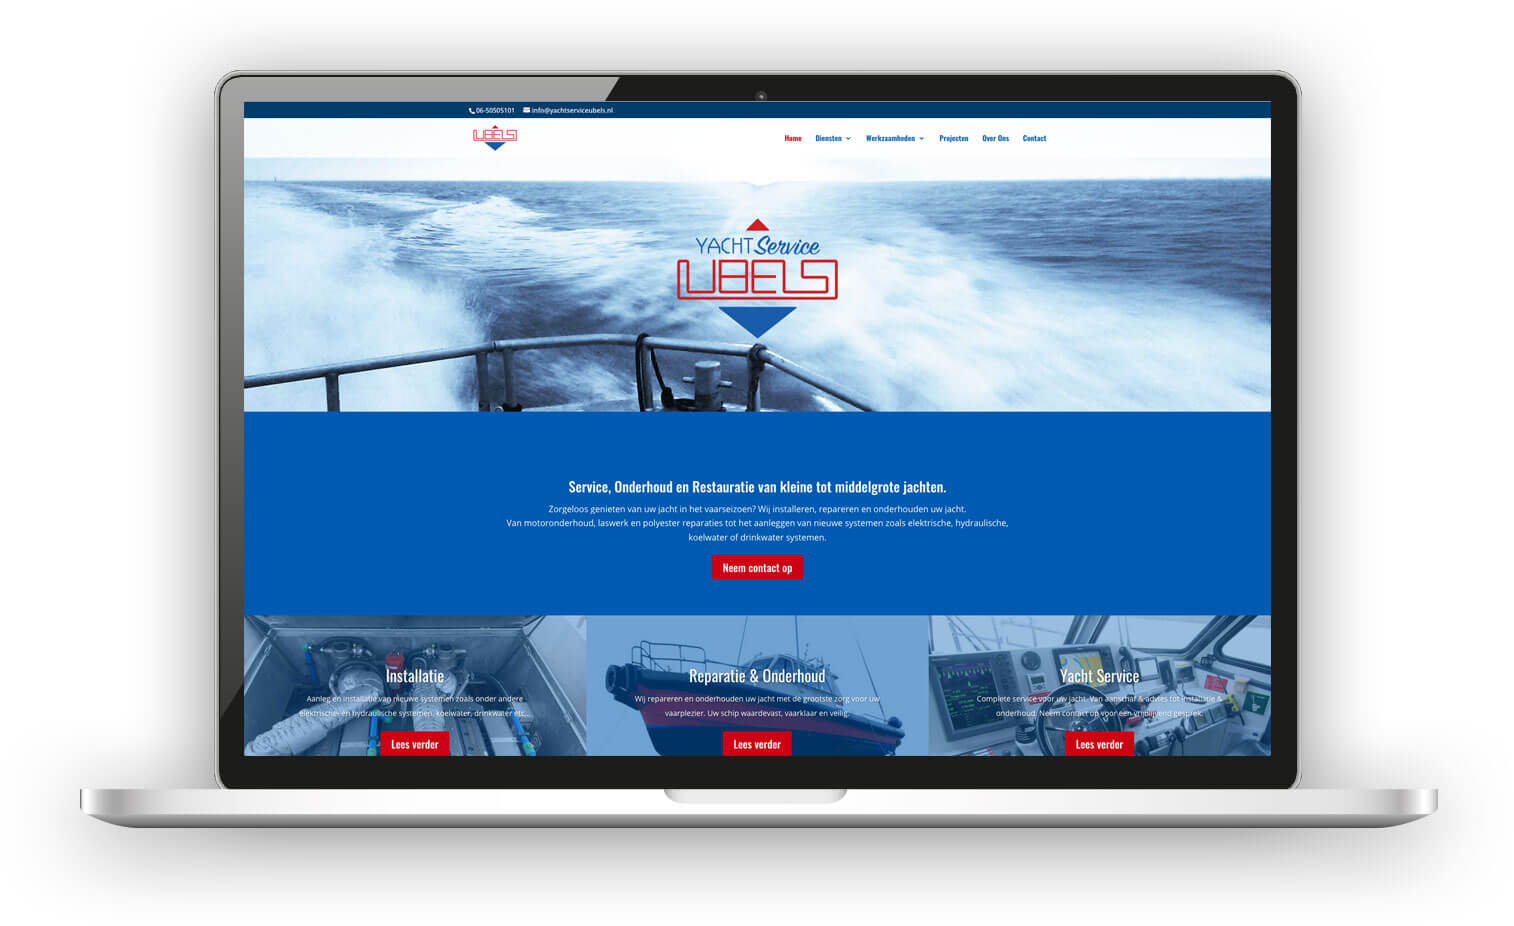 Webdesign Yacht Service Ubels voorbeeld in laptop